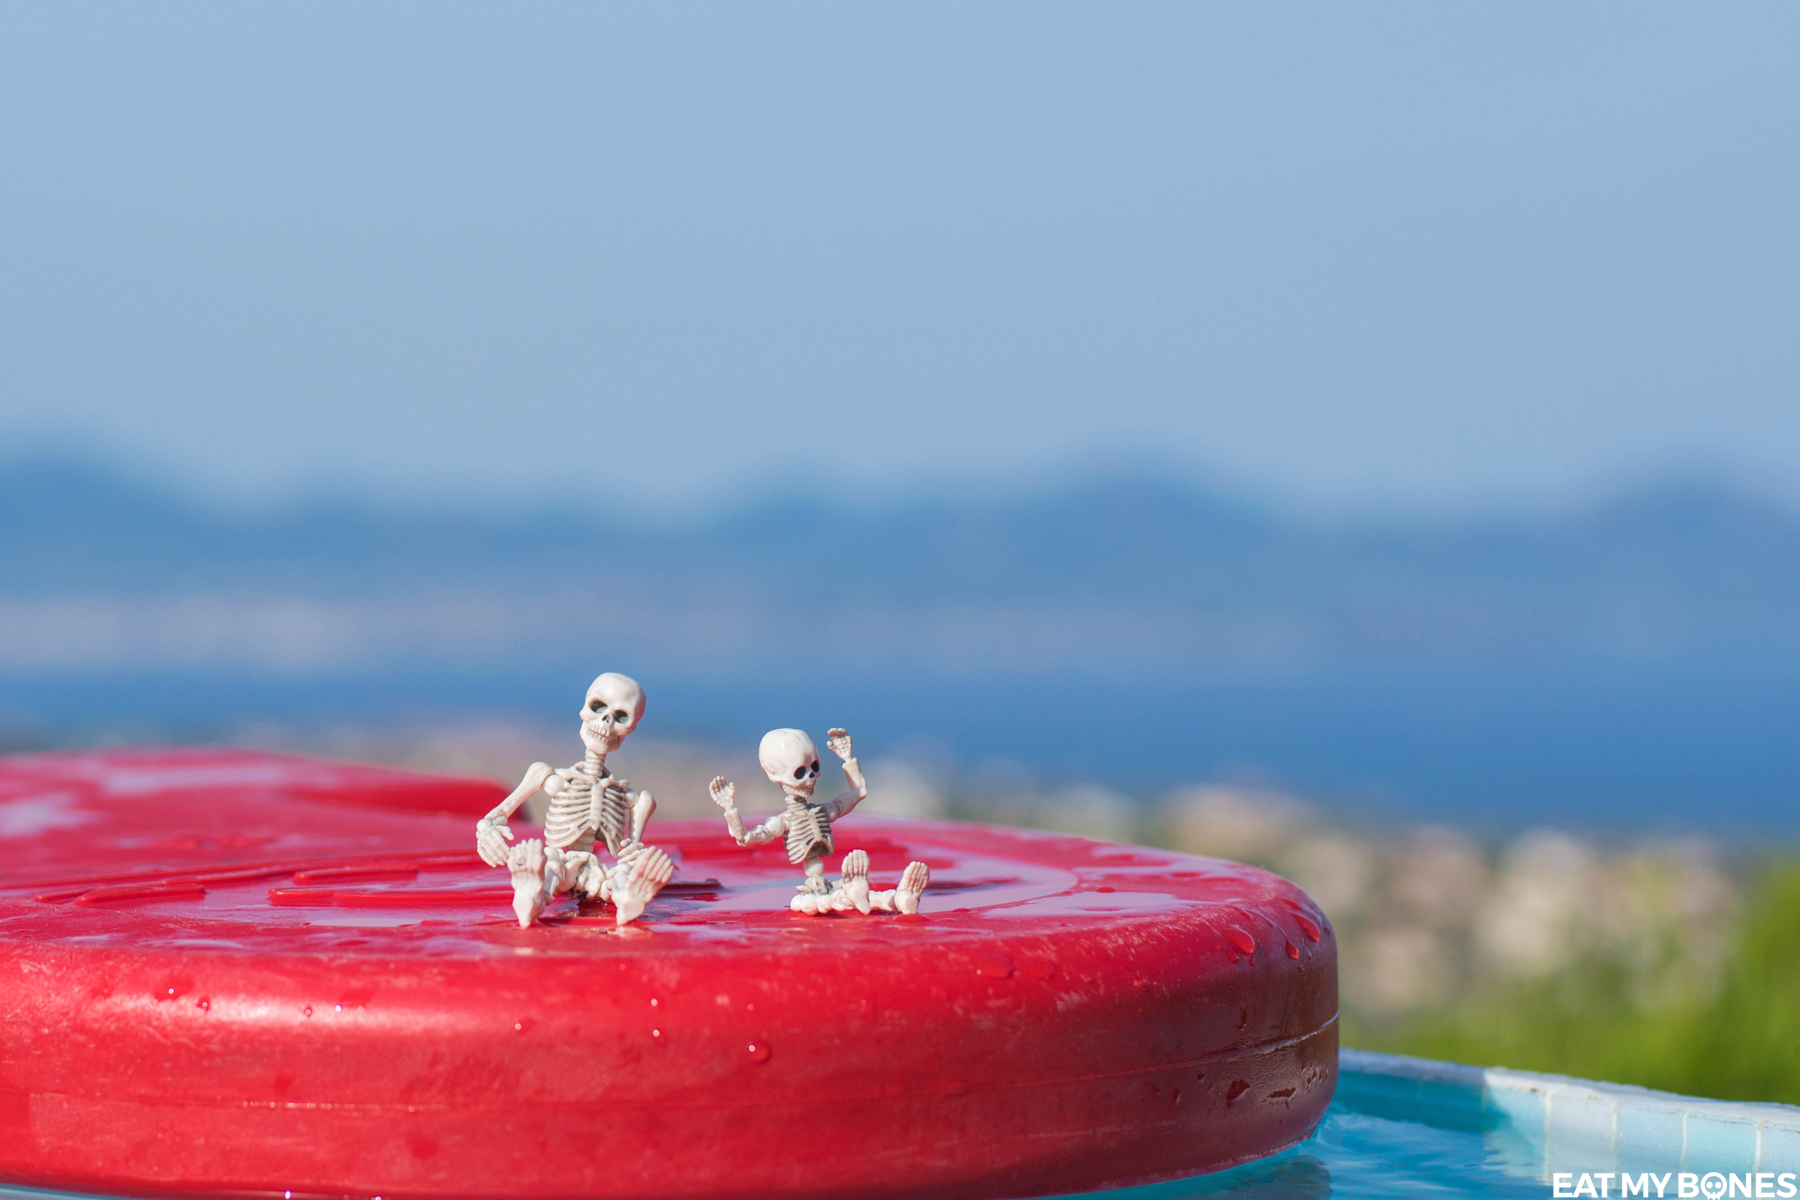 Swimming pool - Pose Skeleton - Toy photography - Miniature - Eat my Bones